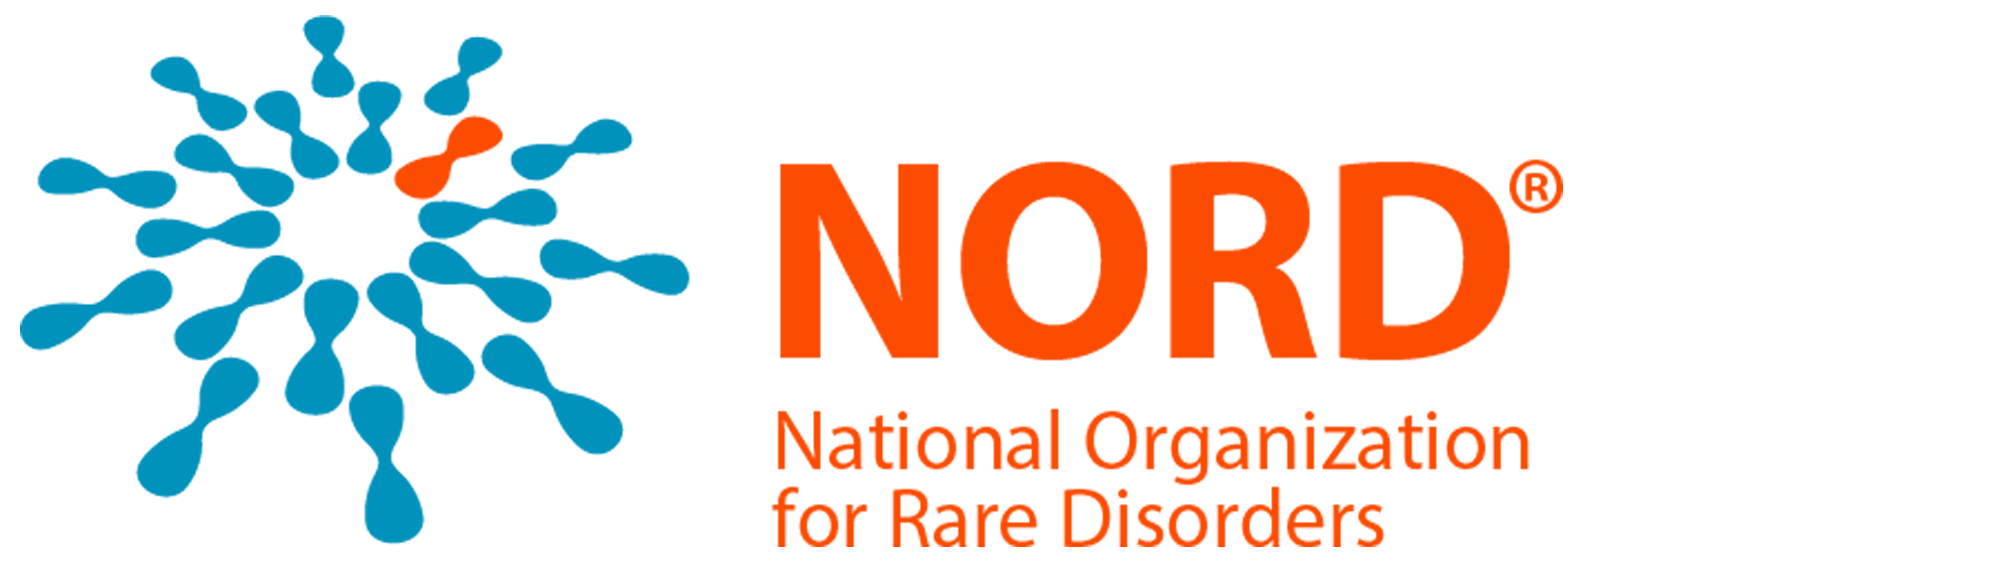 Noonan Syndrome – NORD (National Organization for Rare Disorders)